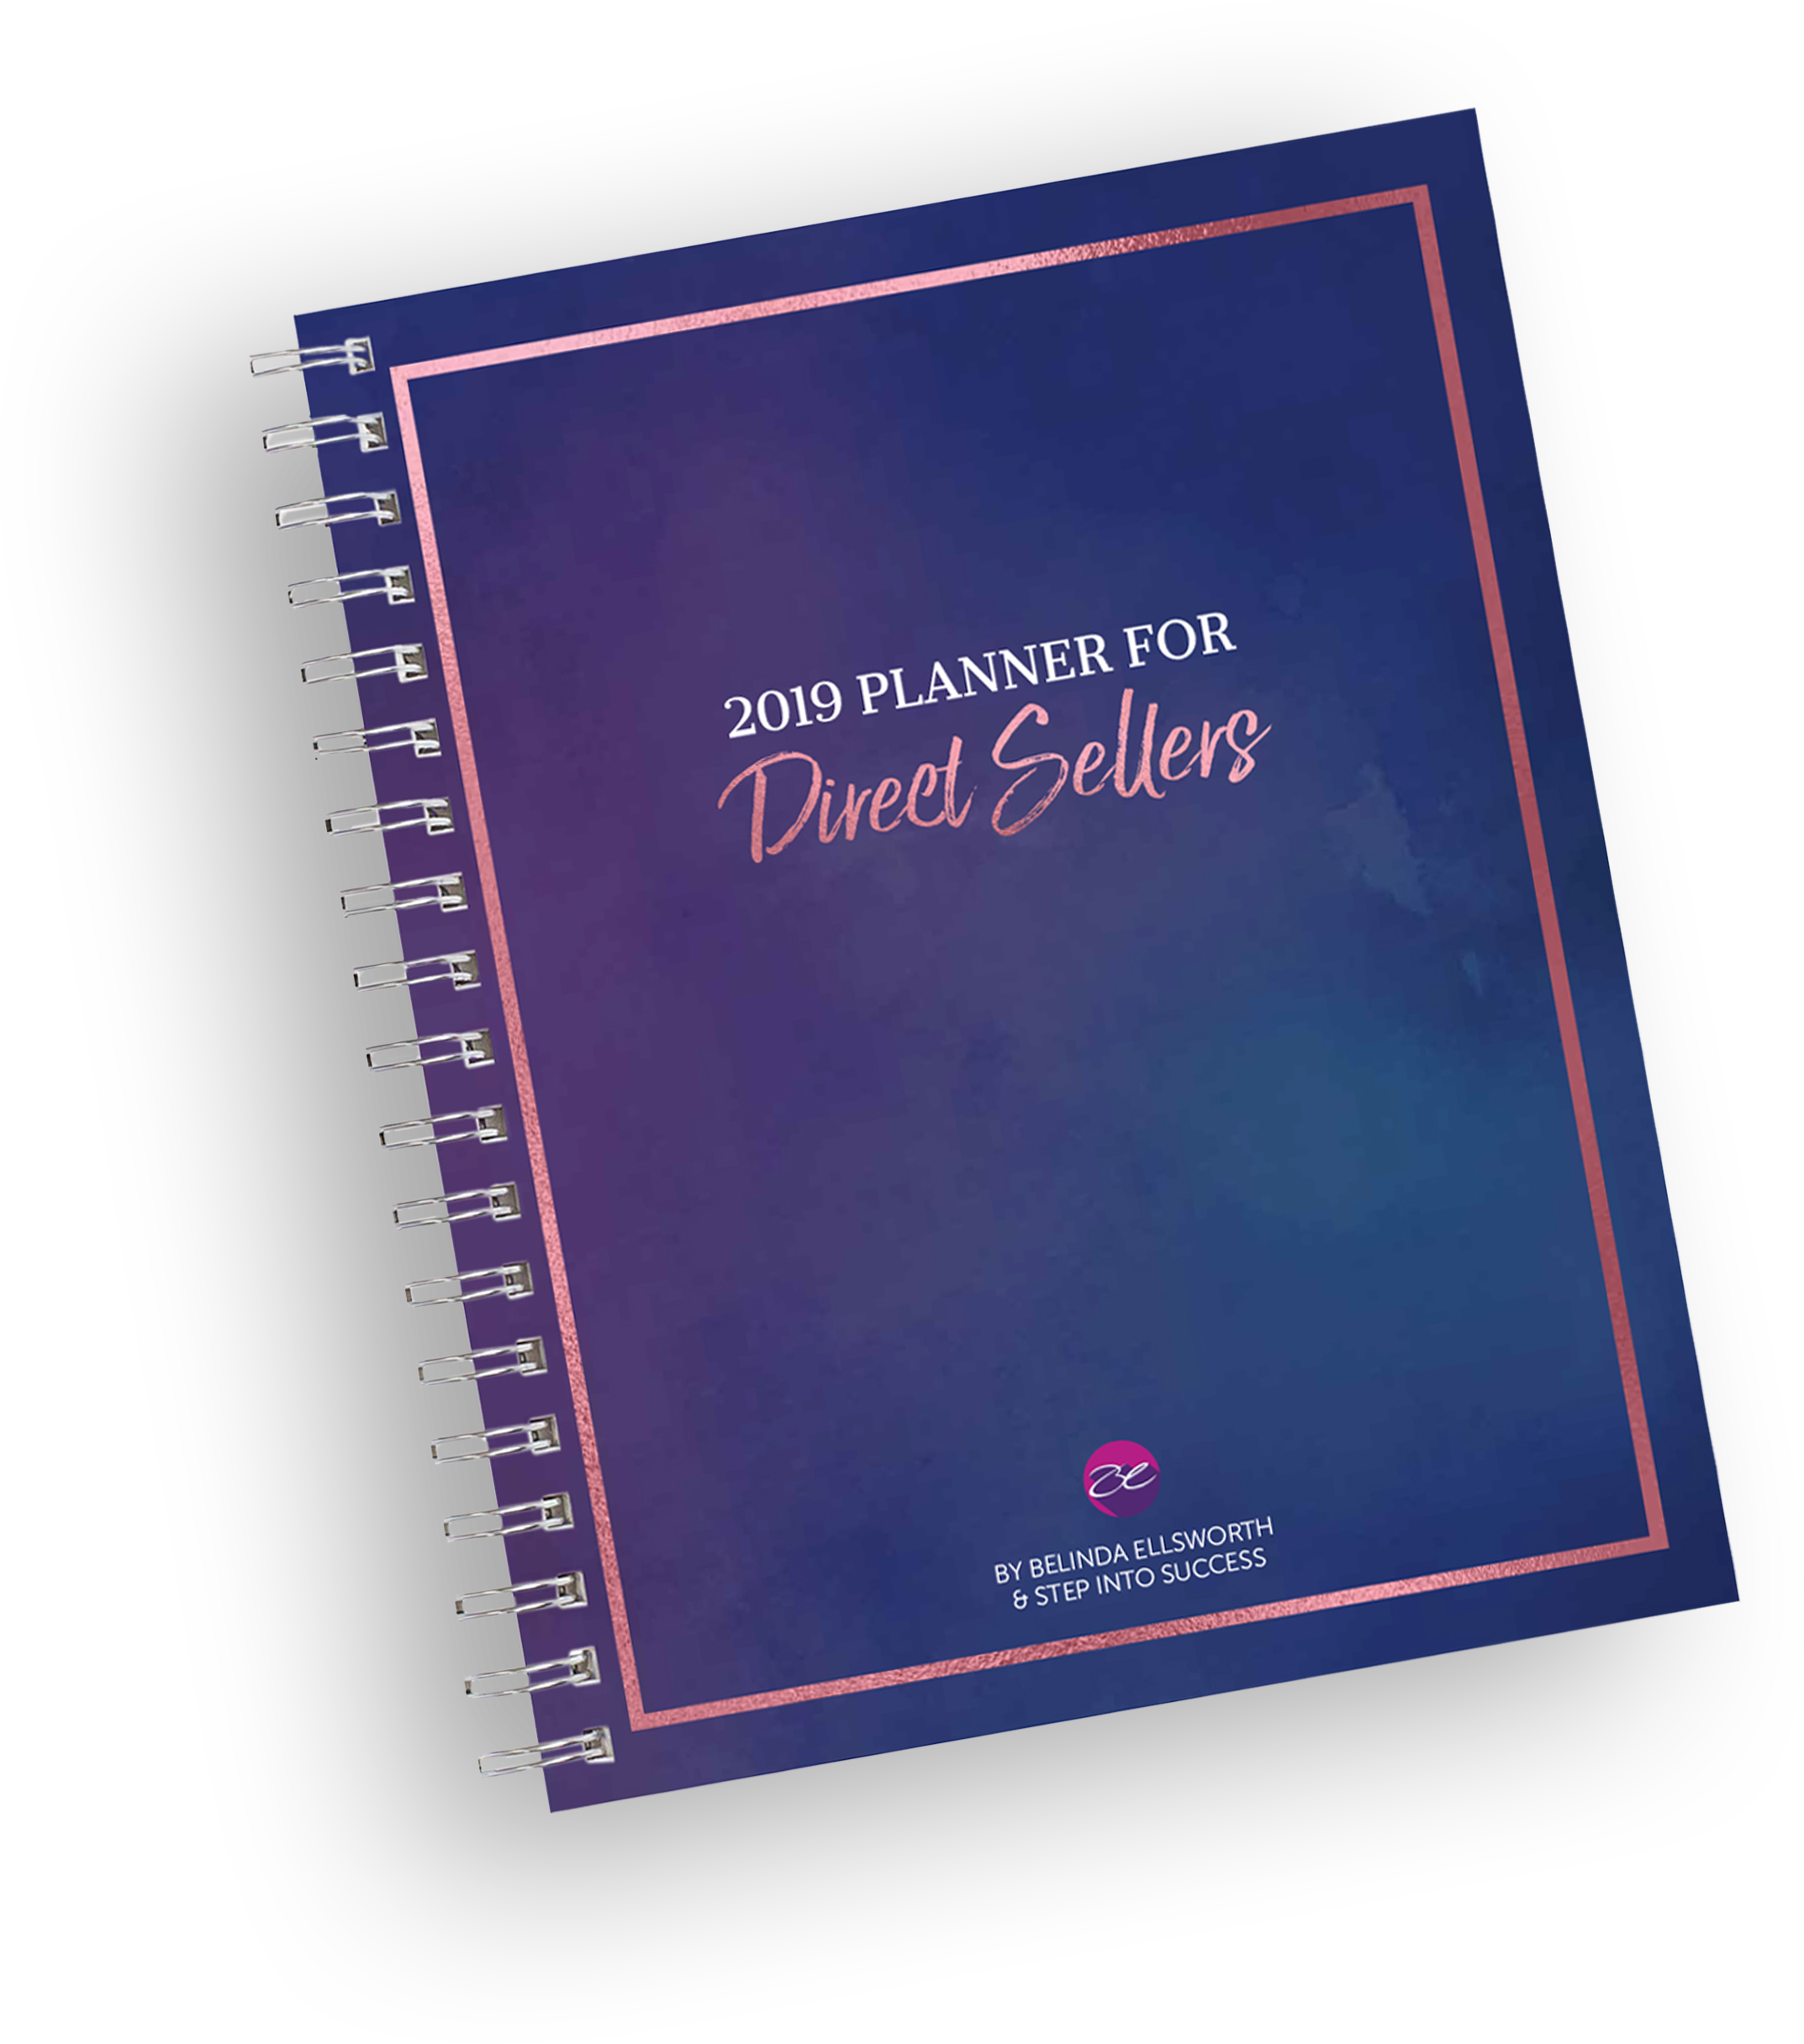 photograph about Free Printable Direct Sales Planner named 2019 Planner for Lead Suppliers - Action Into Achievement